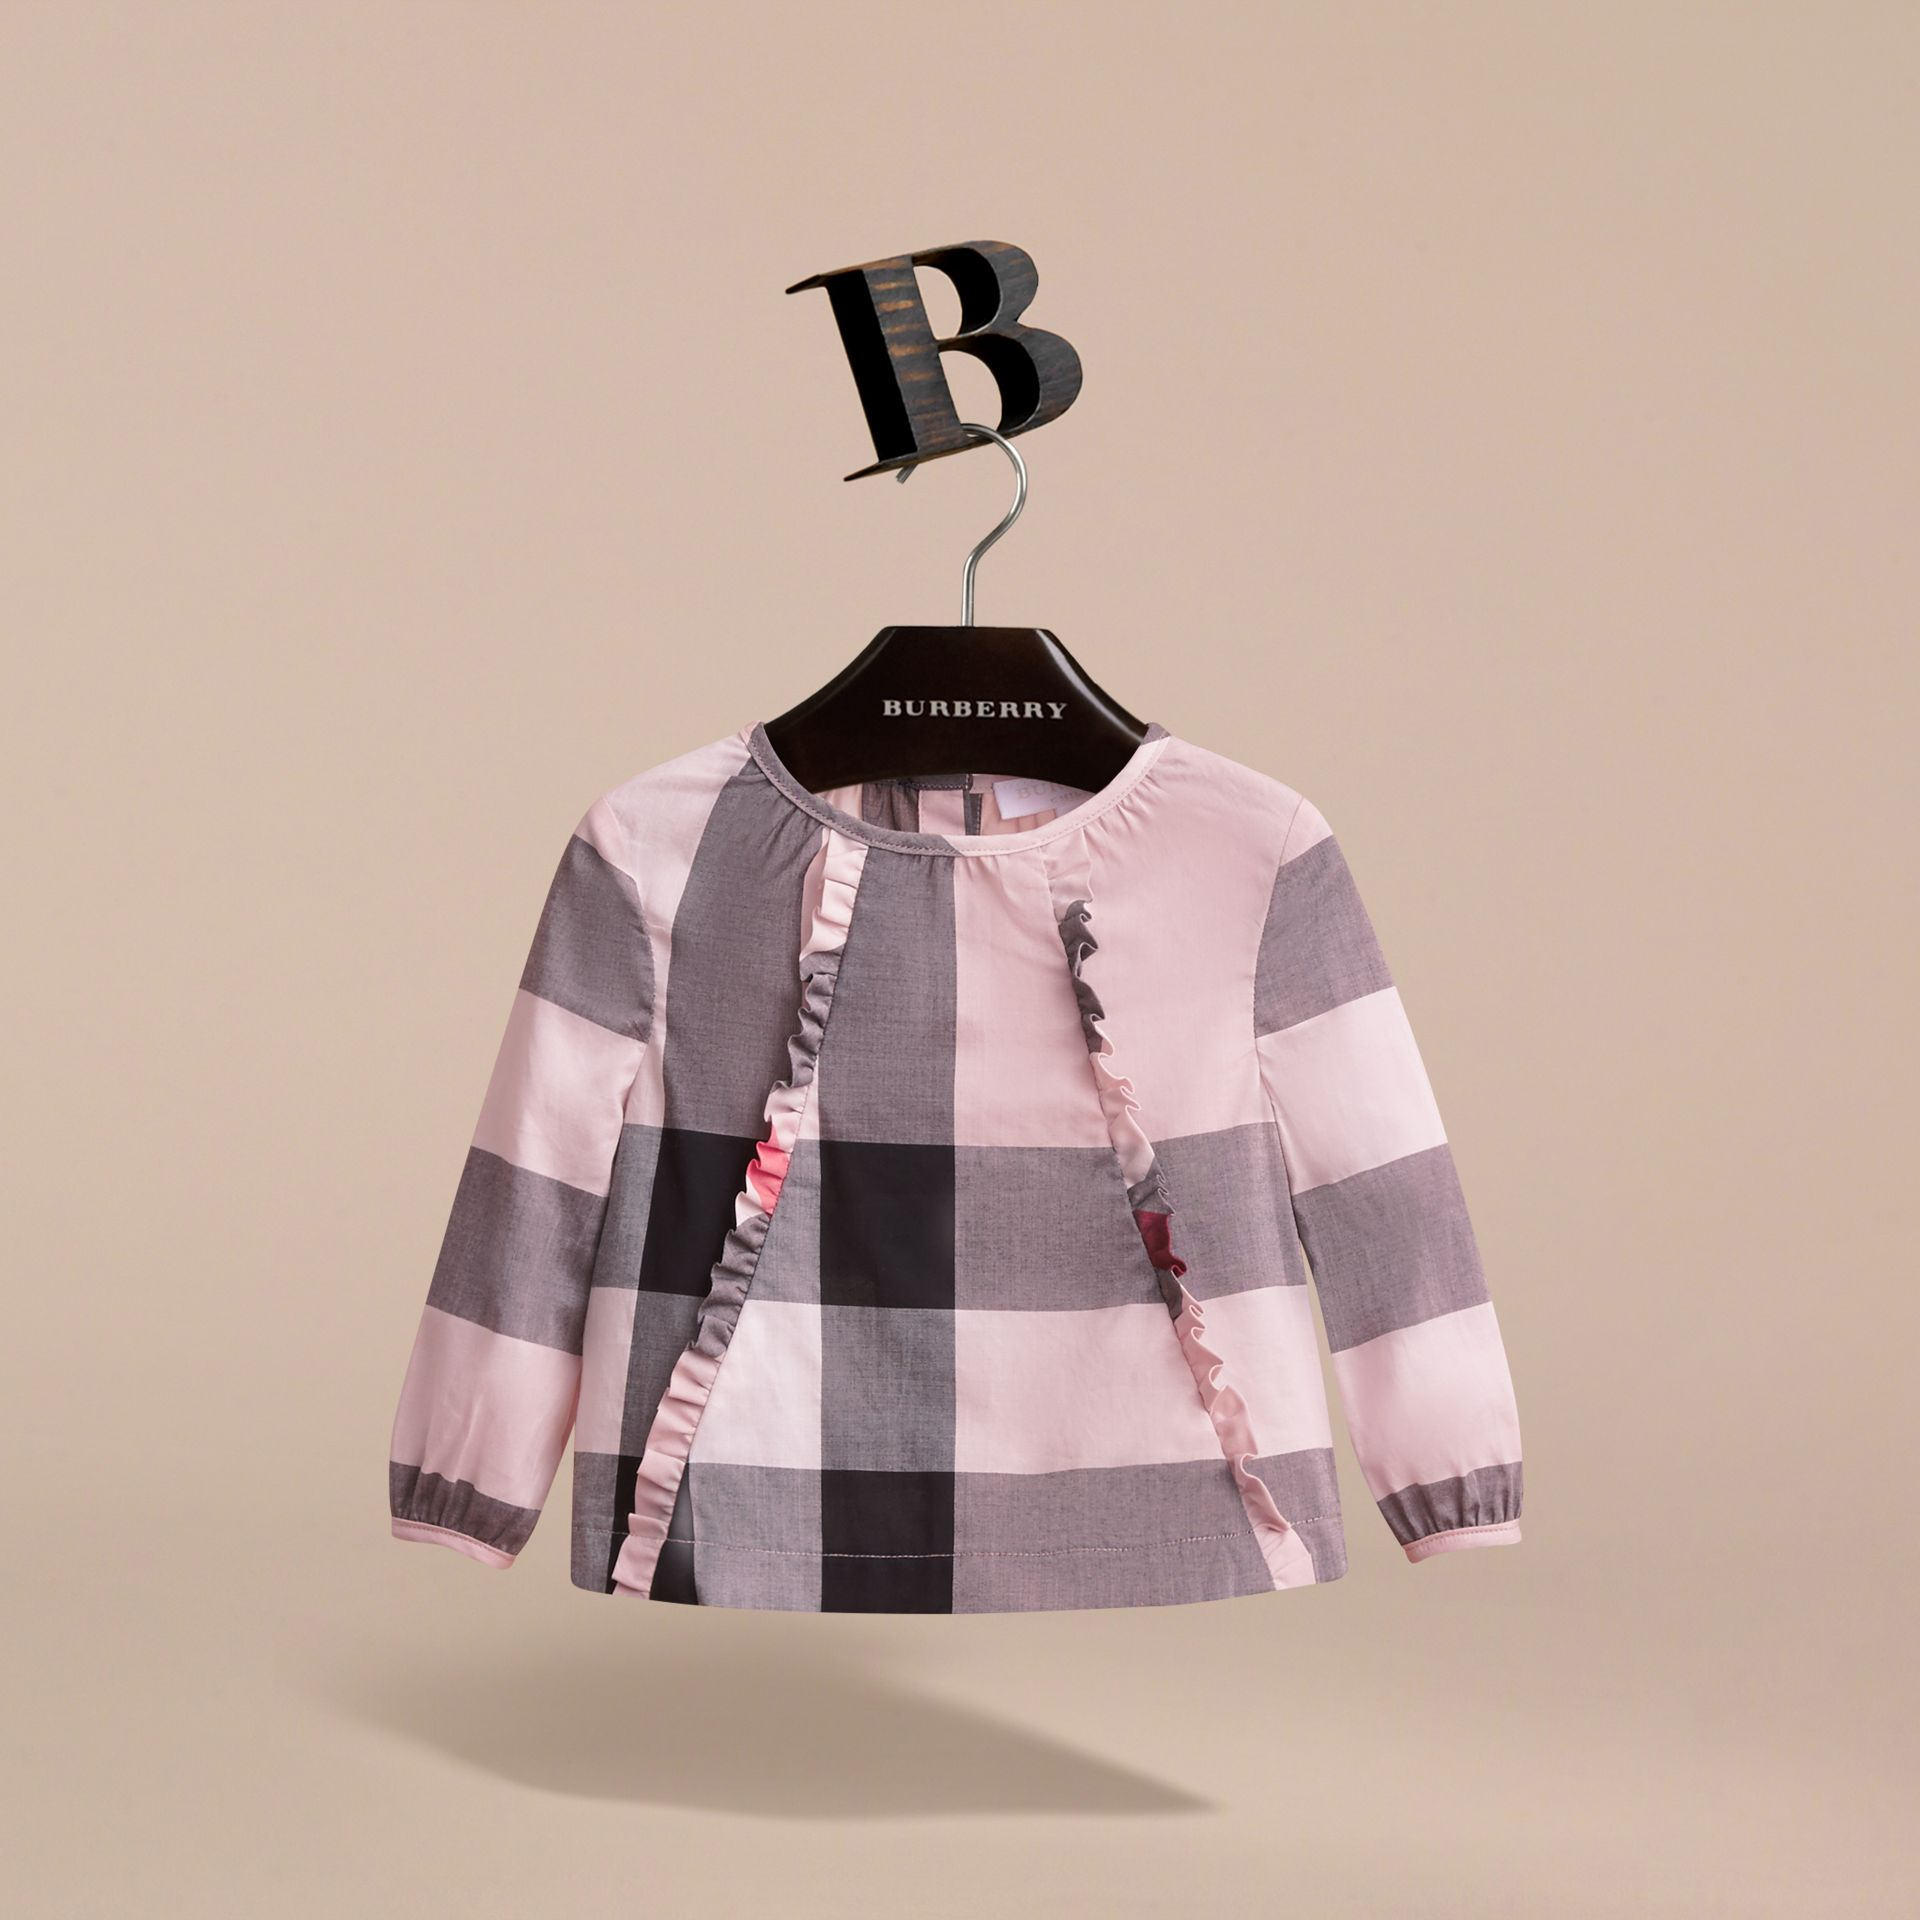 Ruffle Detail Check Cotton Top in Vintage Pink | Burberry United Kingdom - gallery image 2